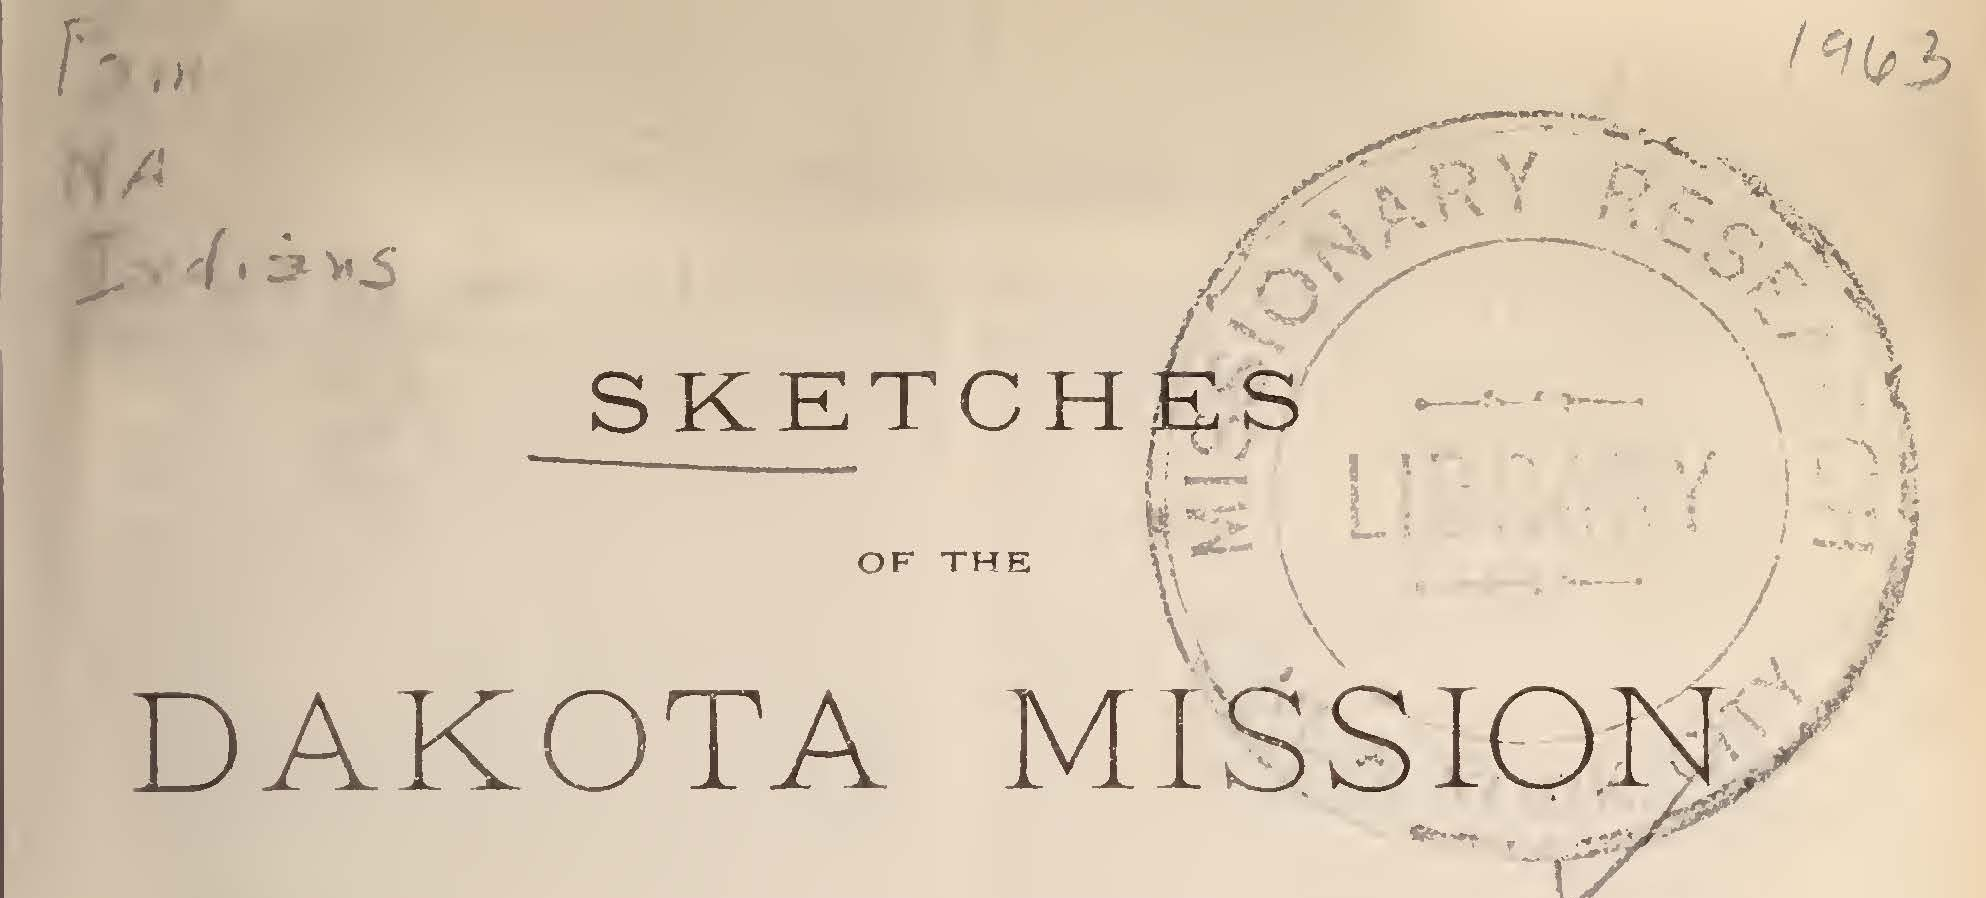 Riggs, Stephen Return, Sketches of the Dakota Mission Title Page.jpg